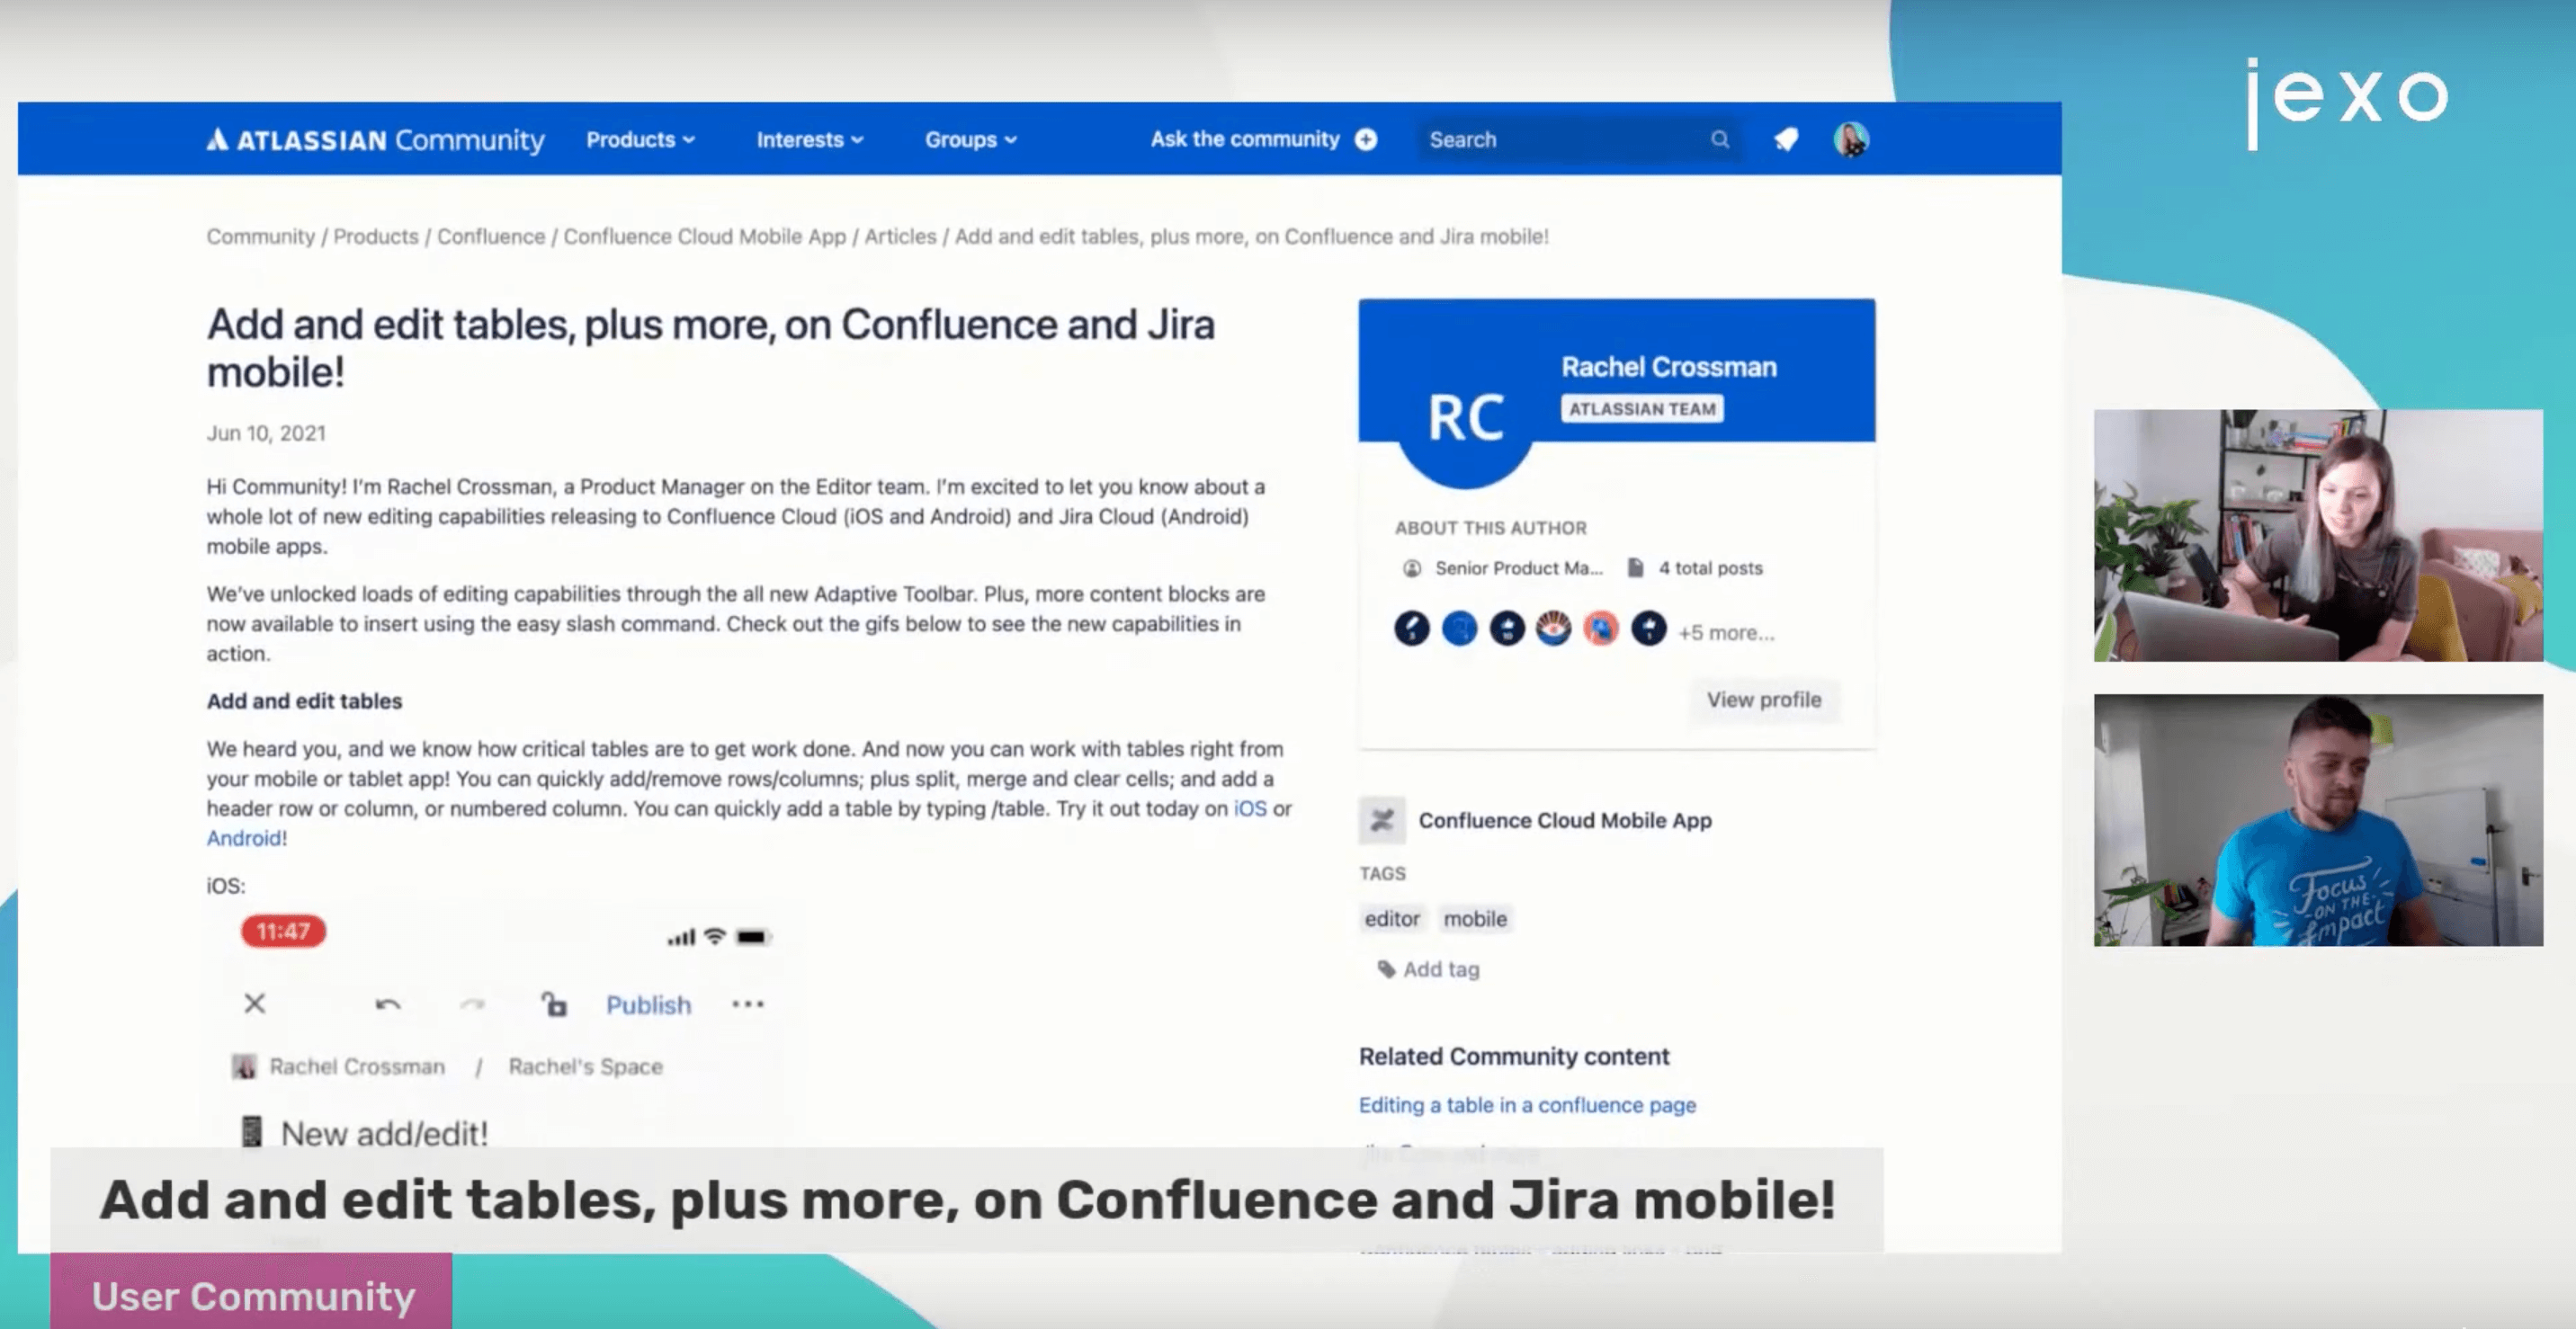 Edit tables improvements to Jira and Confluence mobile apps.